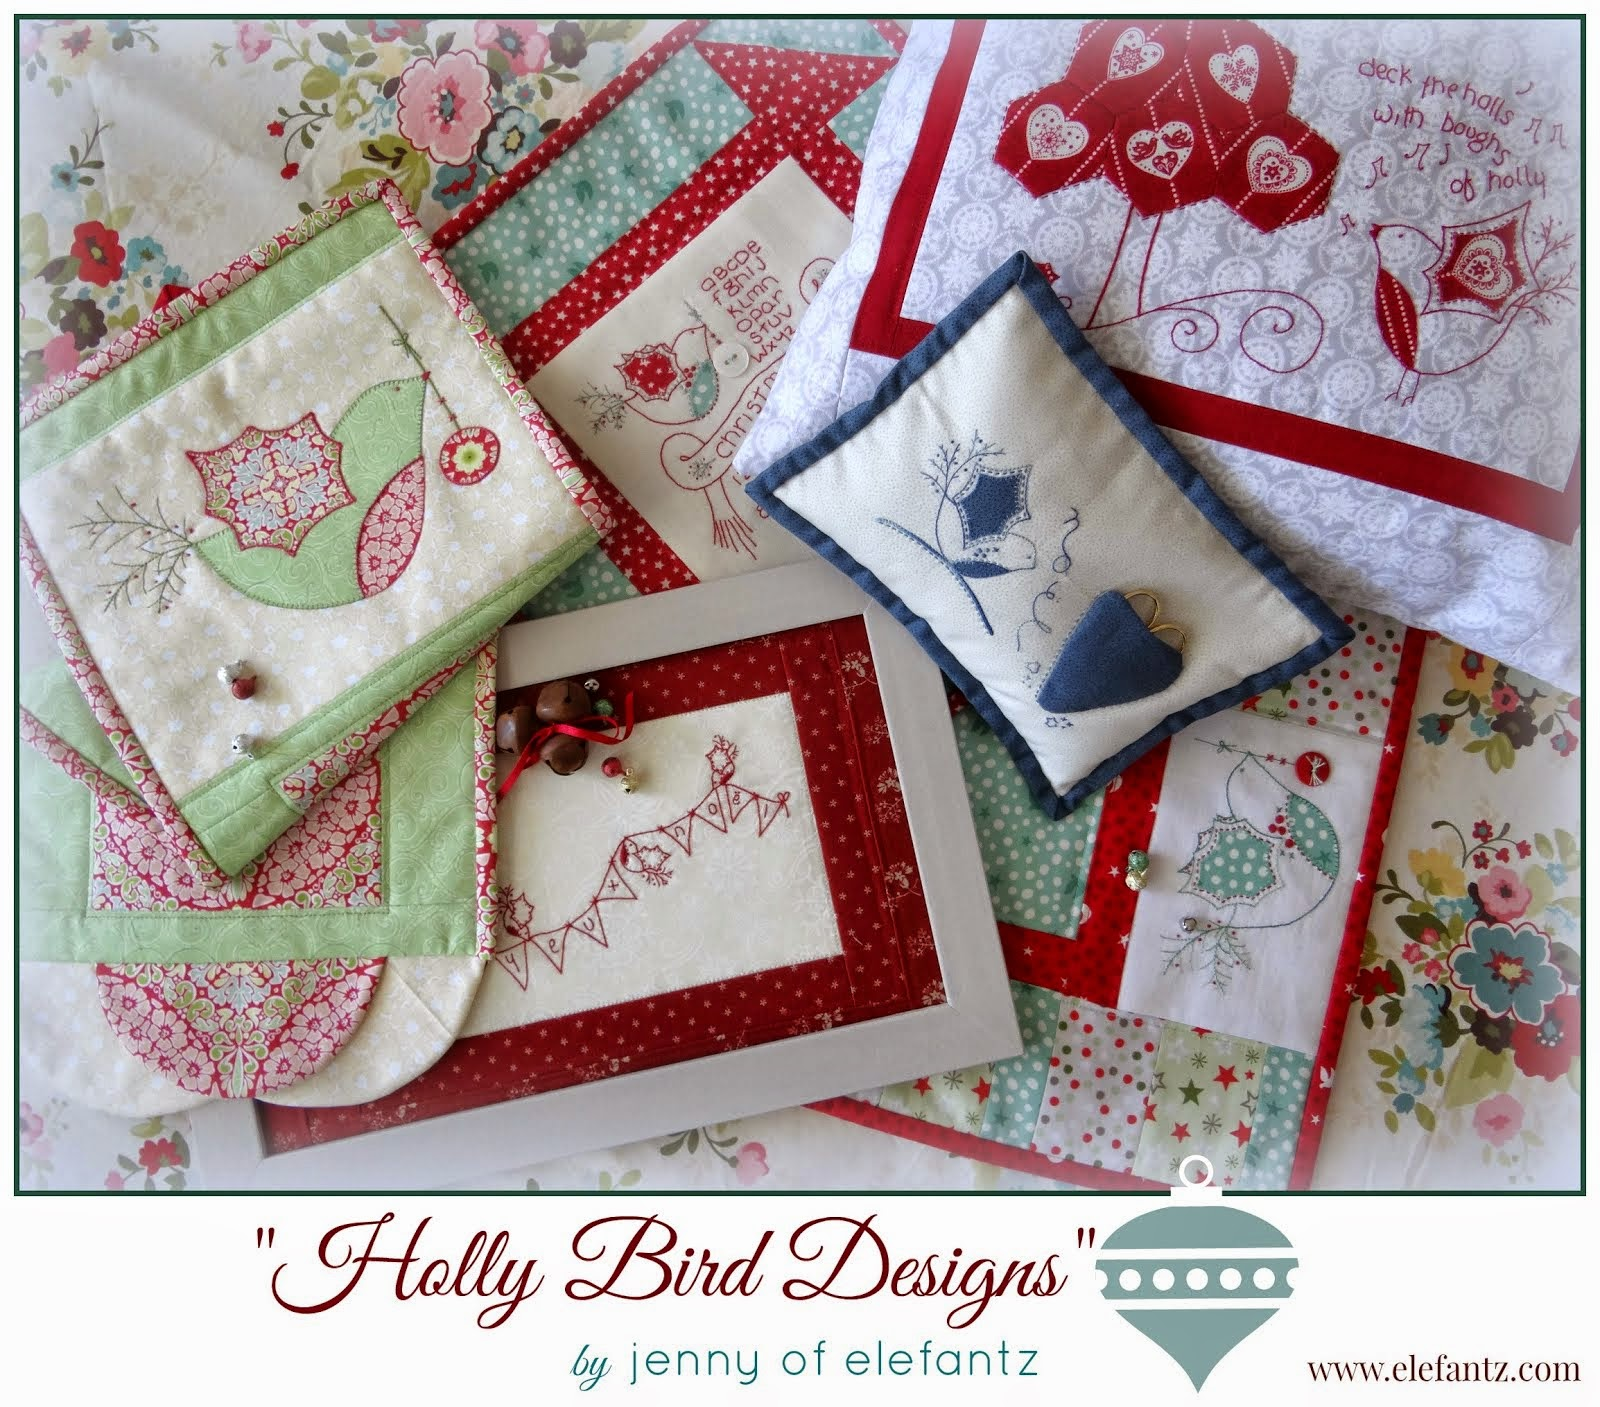 The Holly Bird Designs